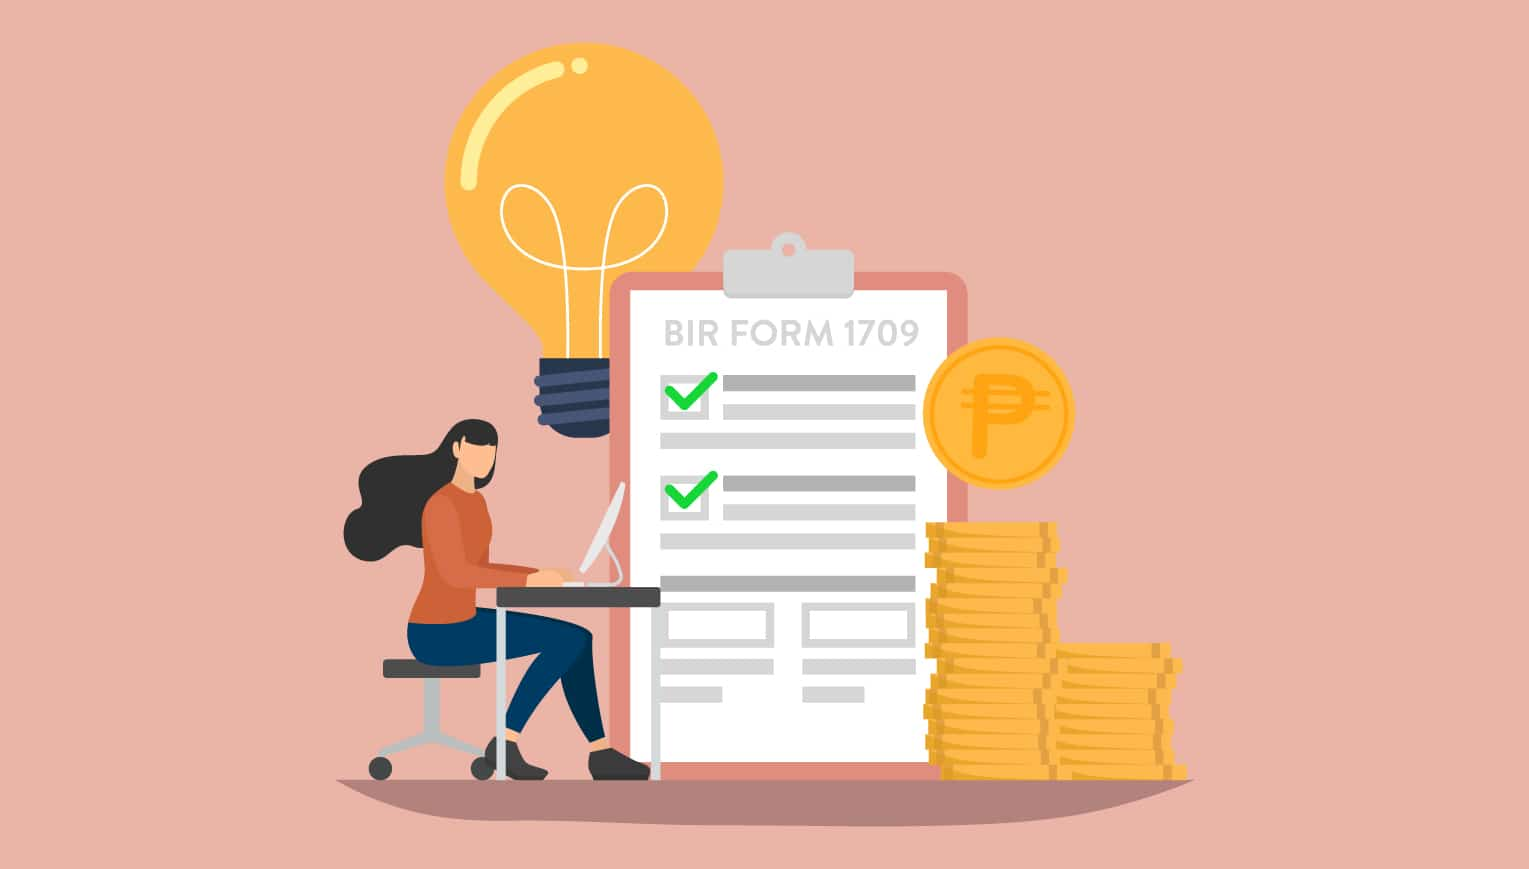 BIR Form 1709 – New Developments For Related-Party Transactions And Transfer Pricing In The Philippines